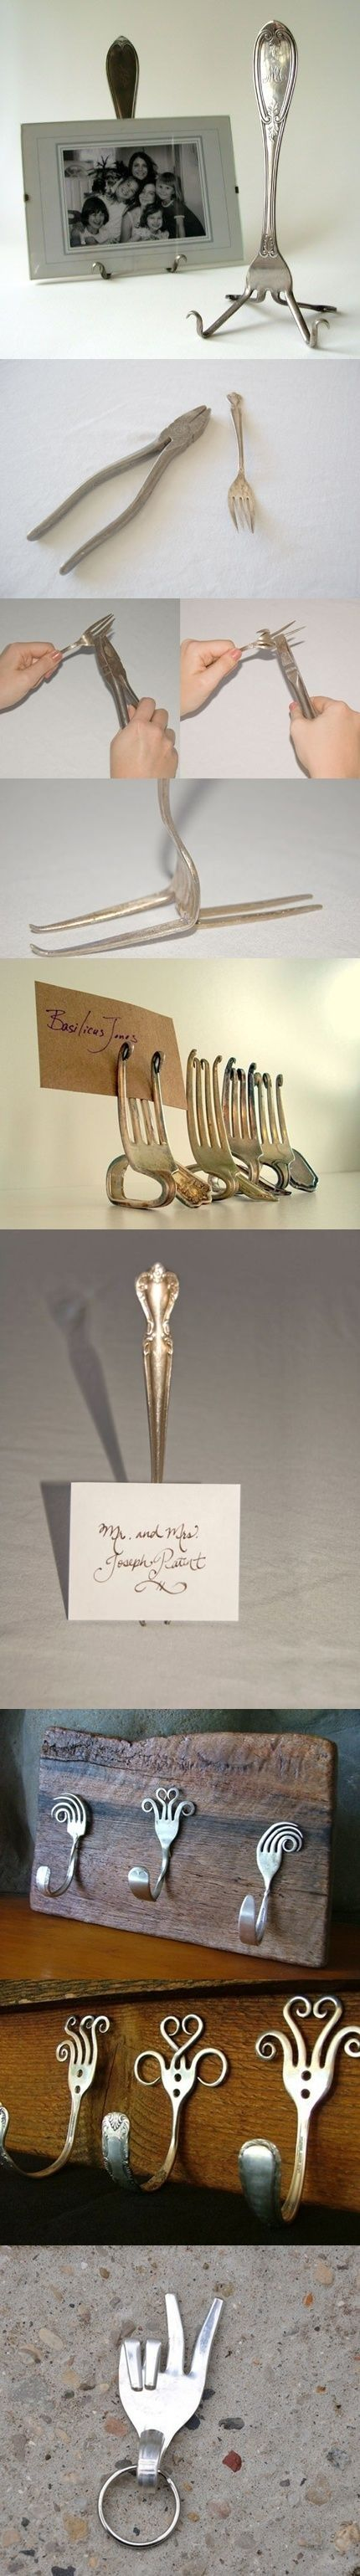 Up-cycled old forks by Sewlea